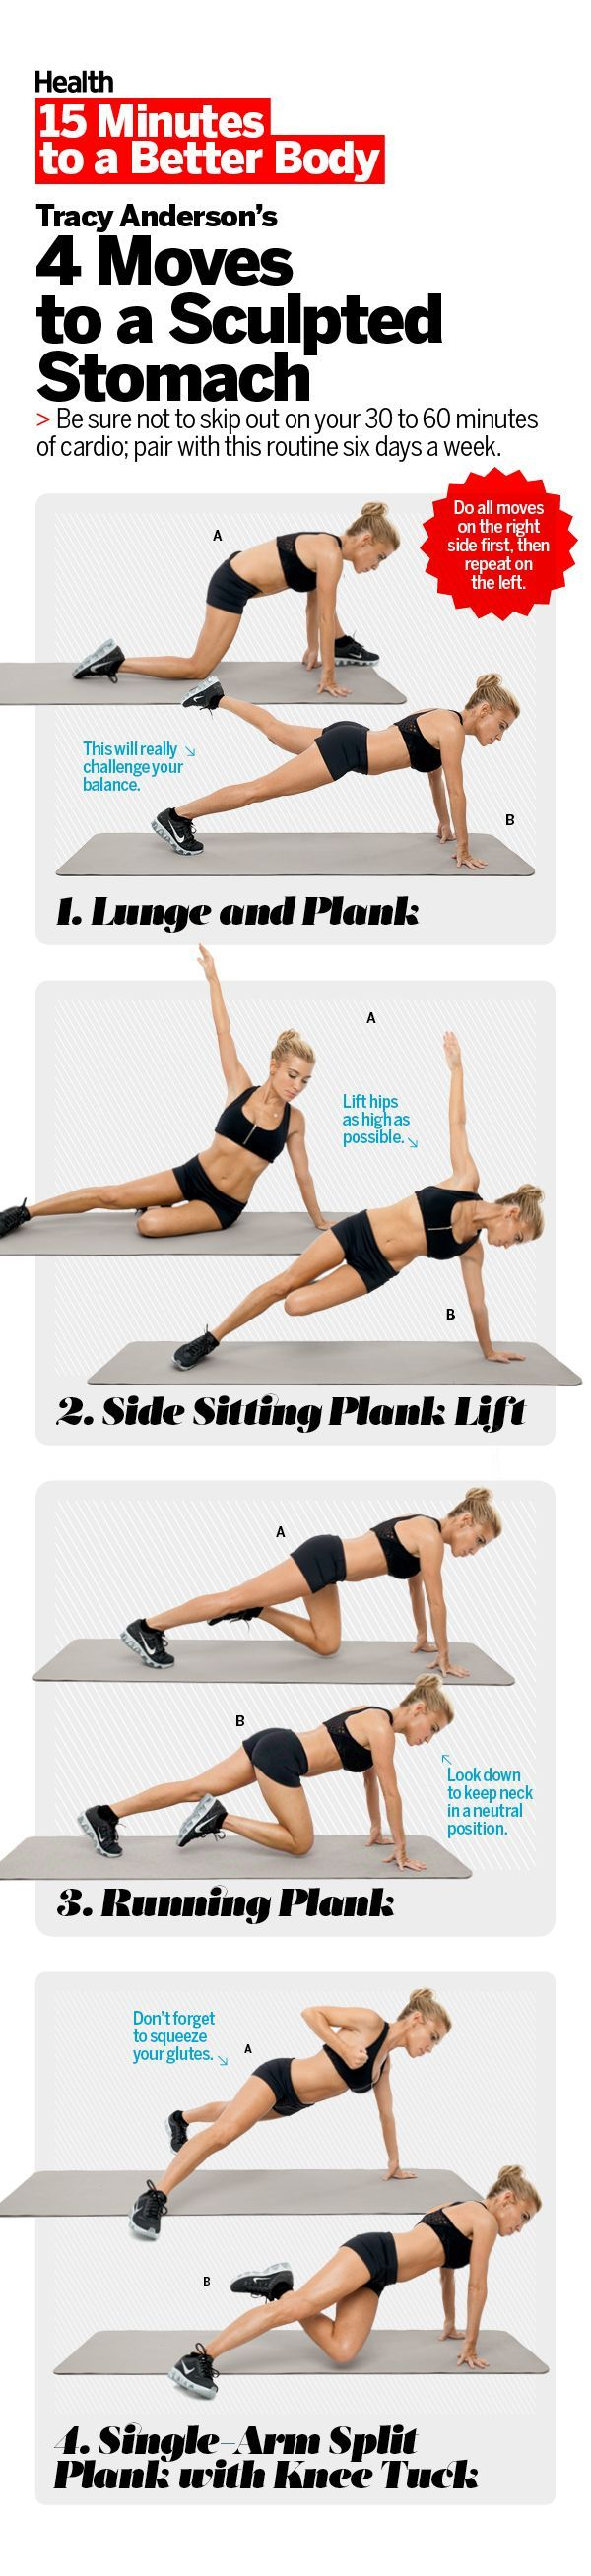 TRACY ANDERSON WORKOUT // 4 Ab-Sculpting Plank Variations: For a sculpted stomach, you'll need to work out every single muscle in your core. Celebrity trainer Tracy Anderson shows you how to do four powerful variations on the plank, designed to tighten and tone your middle. Do these moves six times a week, paired with 30 minutes of cardio, for major results.